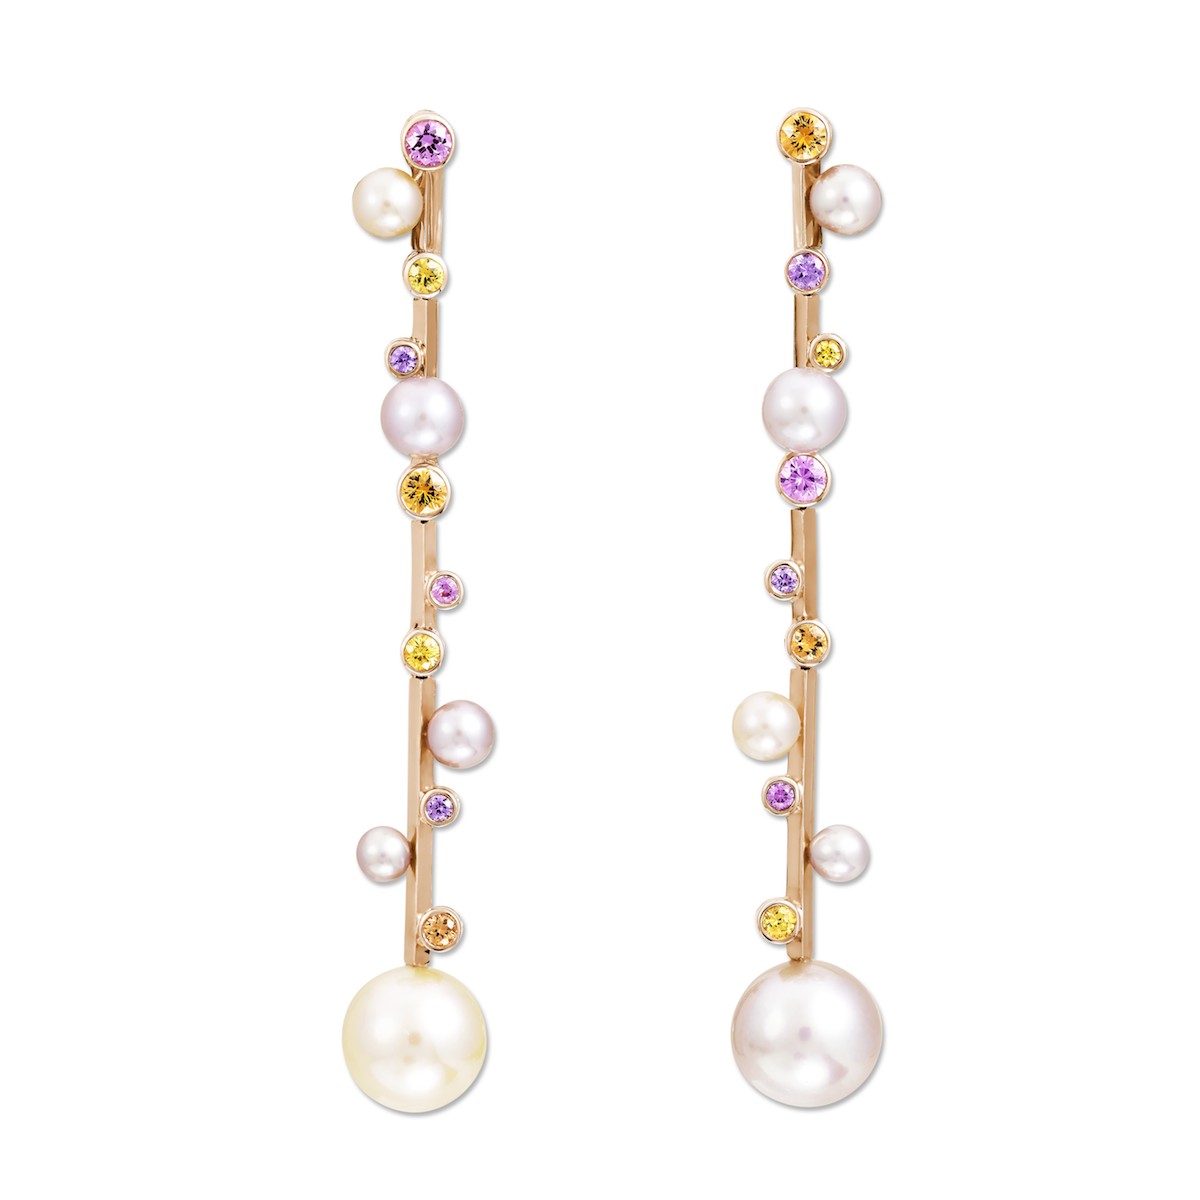 Angels glamourous pearl earrings forecast to wear for winter in 2019